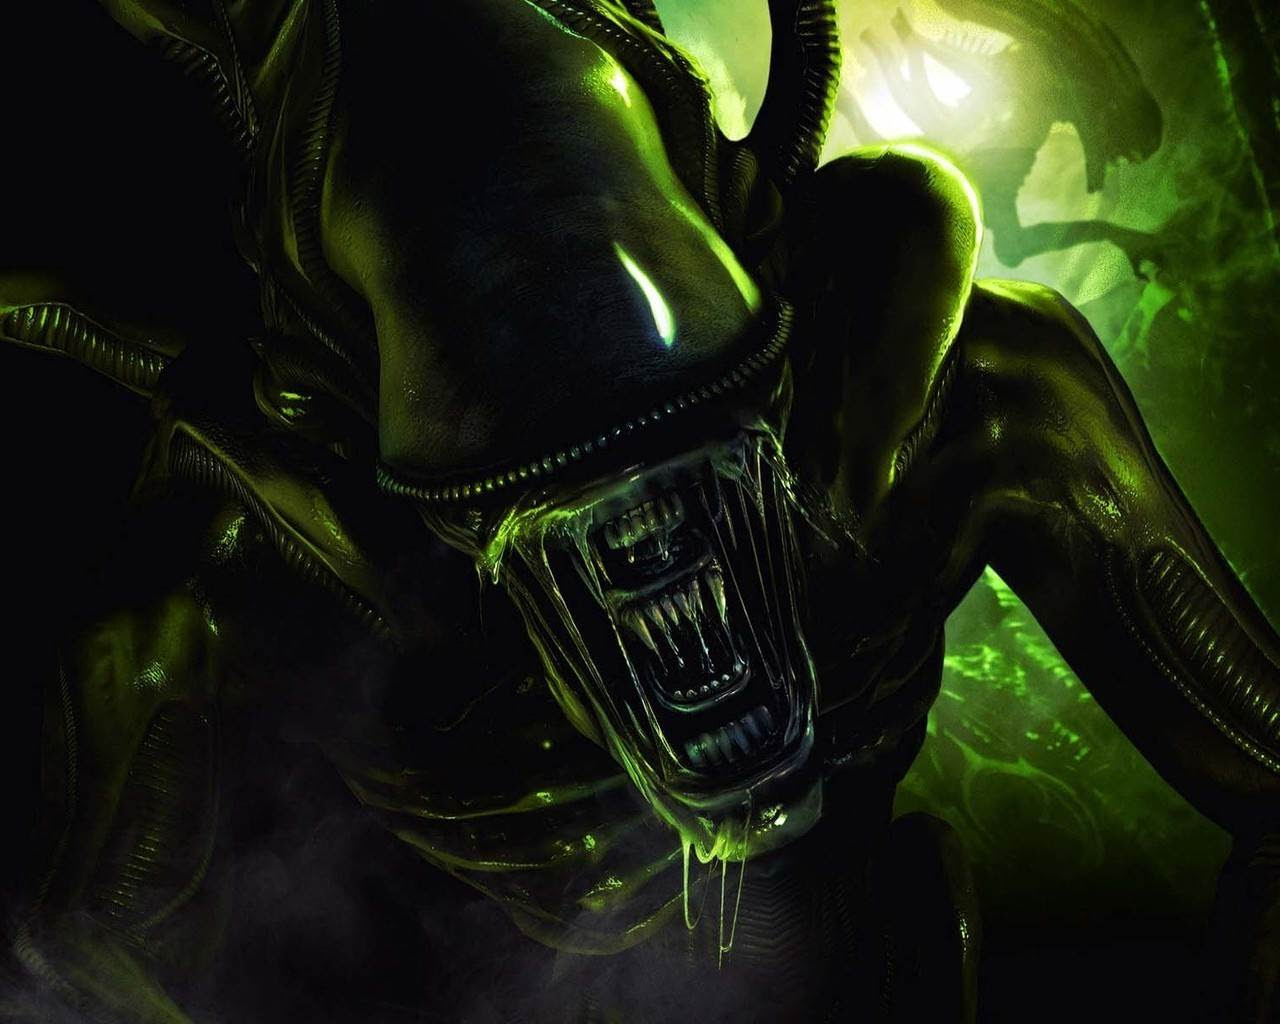 Alien From Alien Vs Predator Wallpaper From Dark Wallpapers